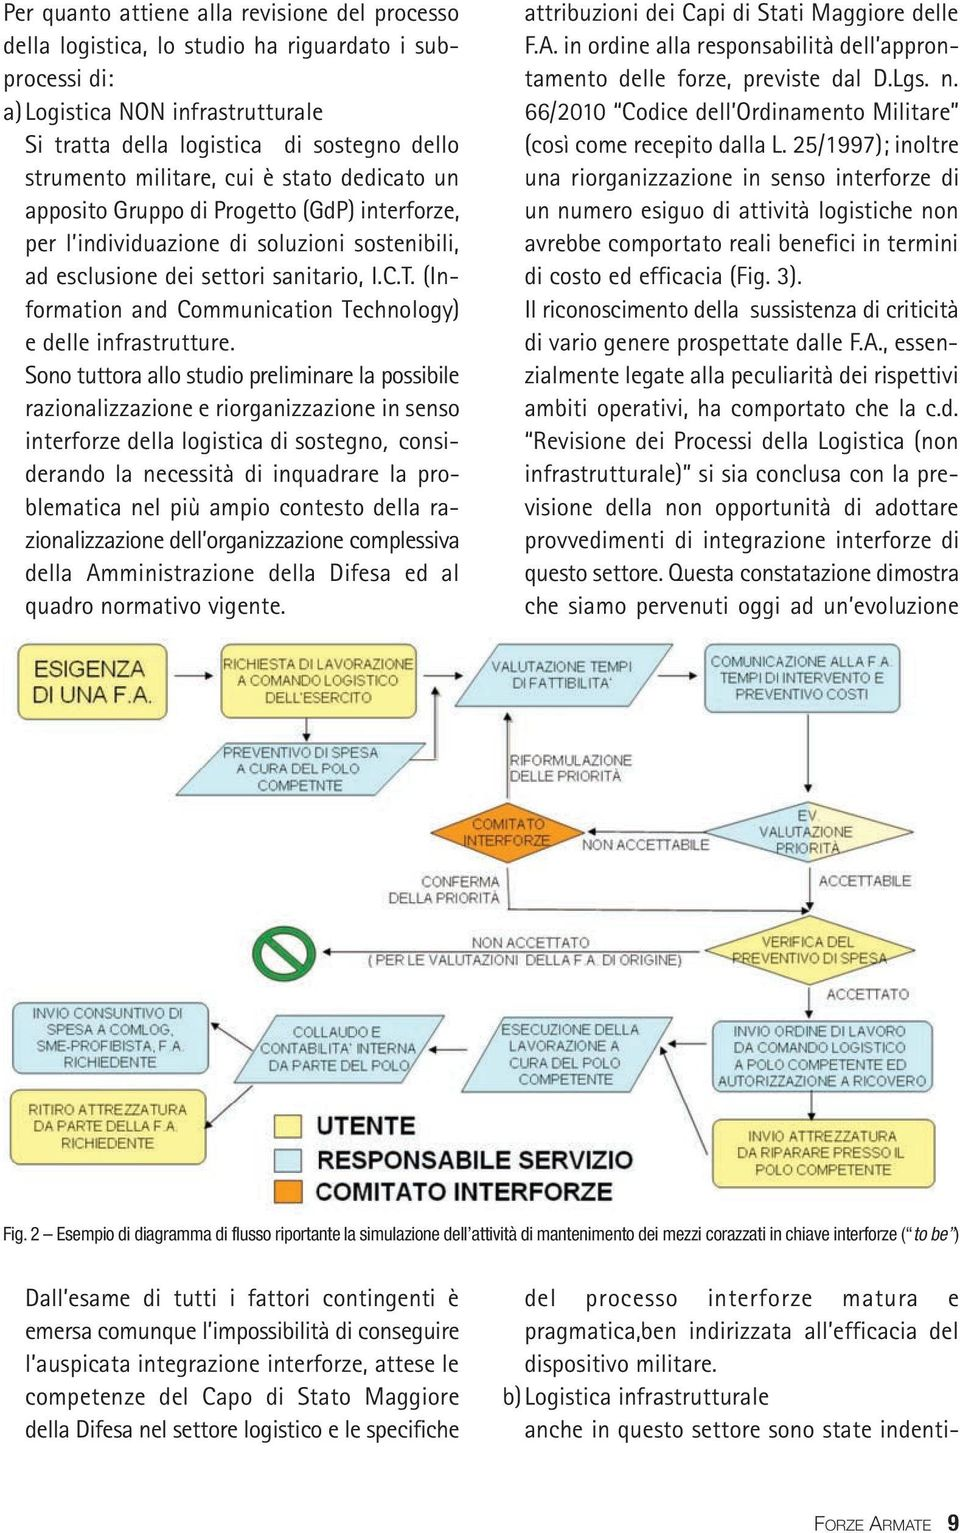 (Information and Communication Technology) e delle infrastrutture.